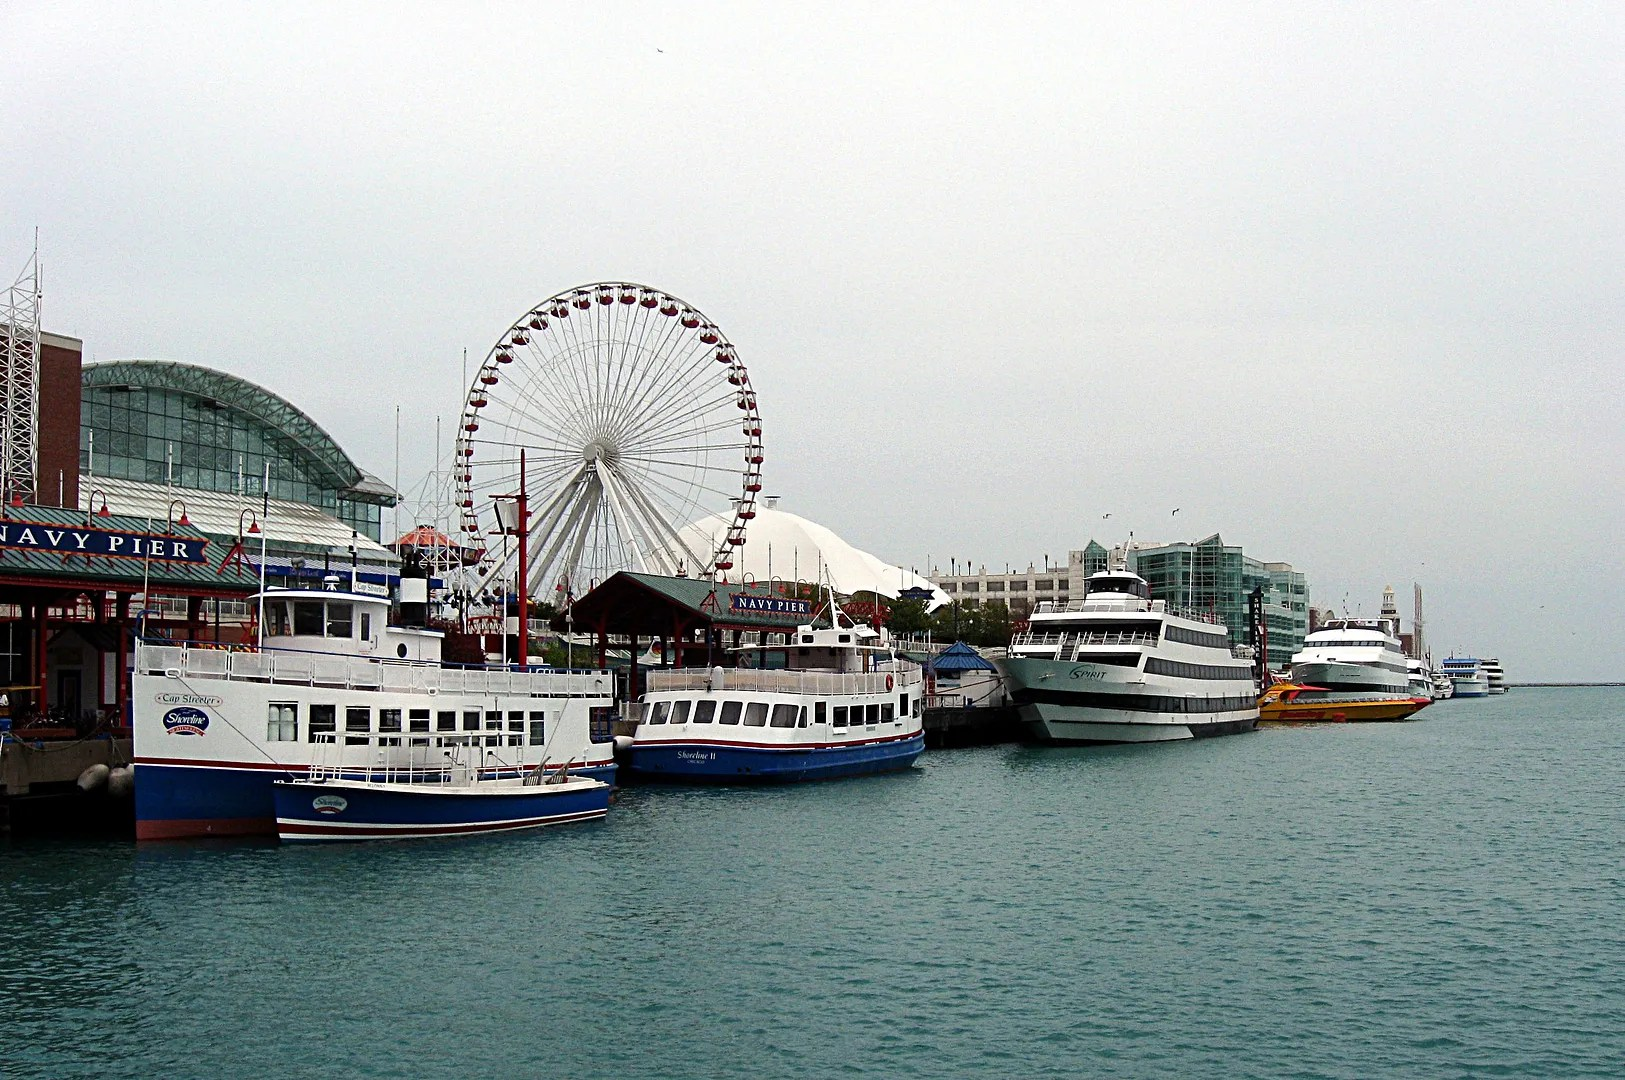 yachts, Navy Pier, Chicago